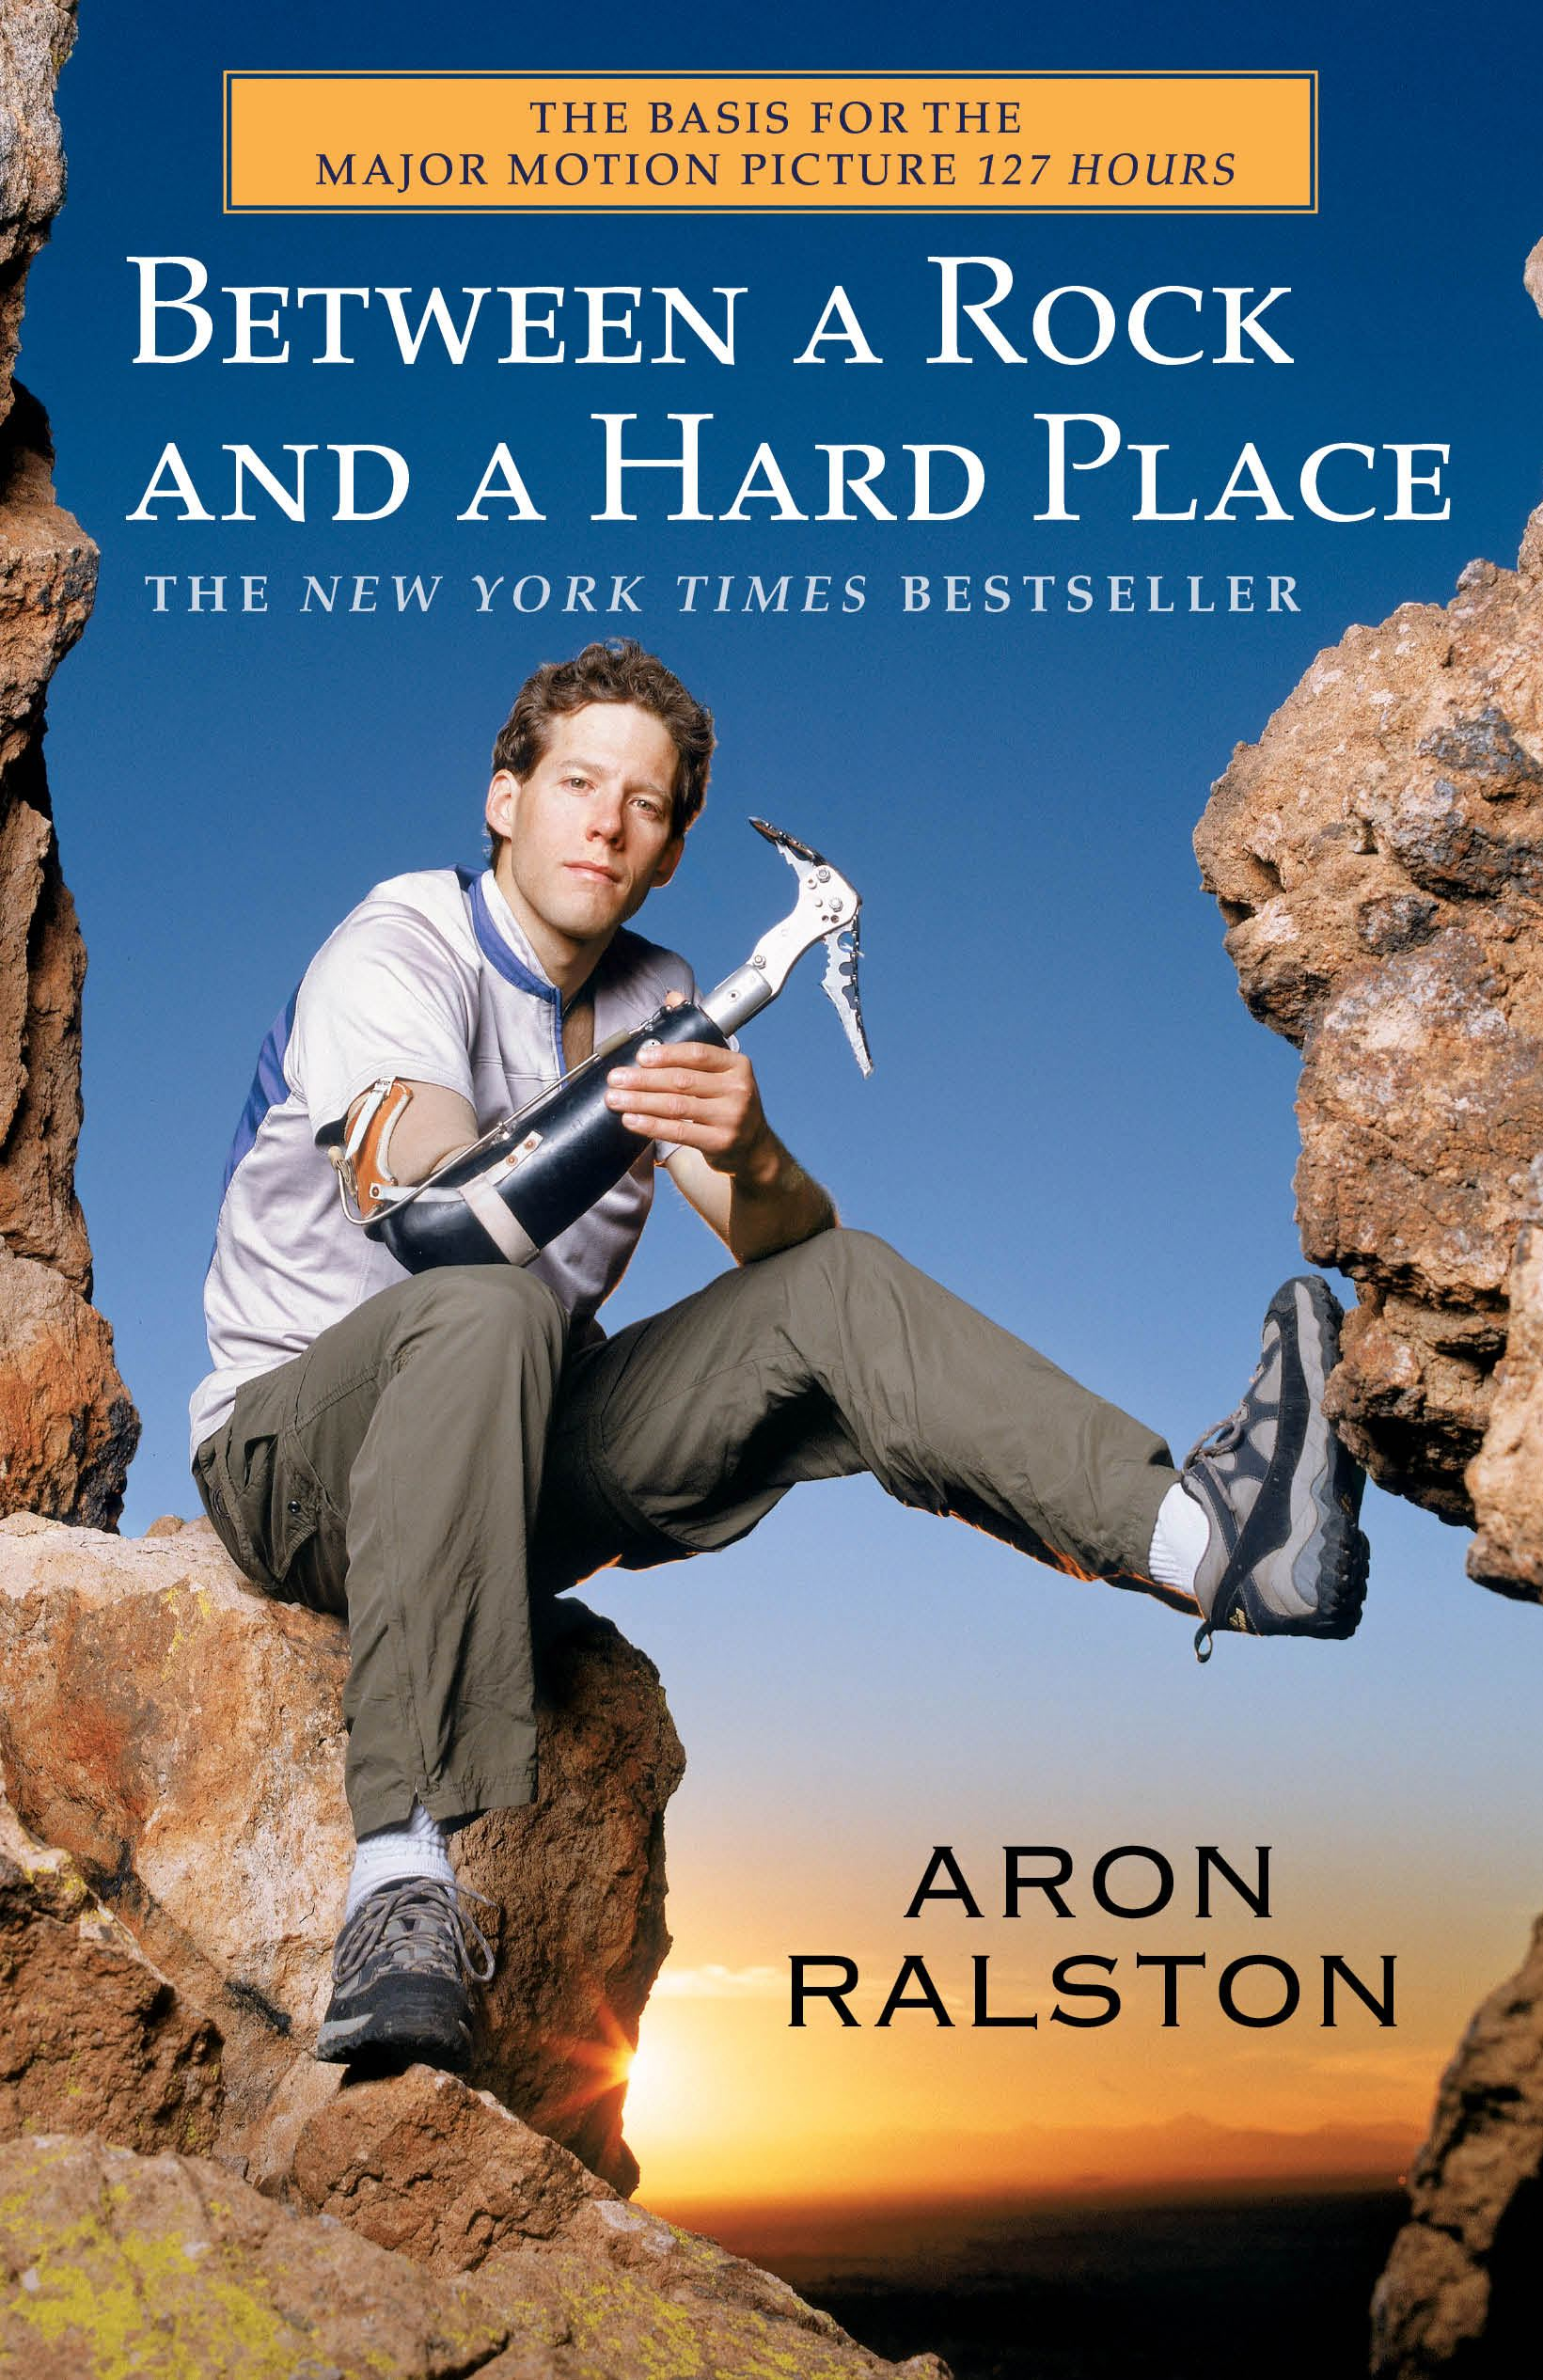 a comparison between the portrayal of pain in aron ralstons memoir between a rock and a hard place a